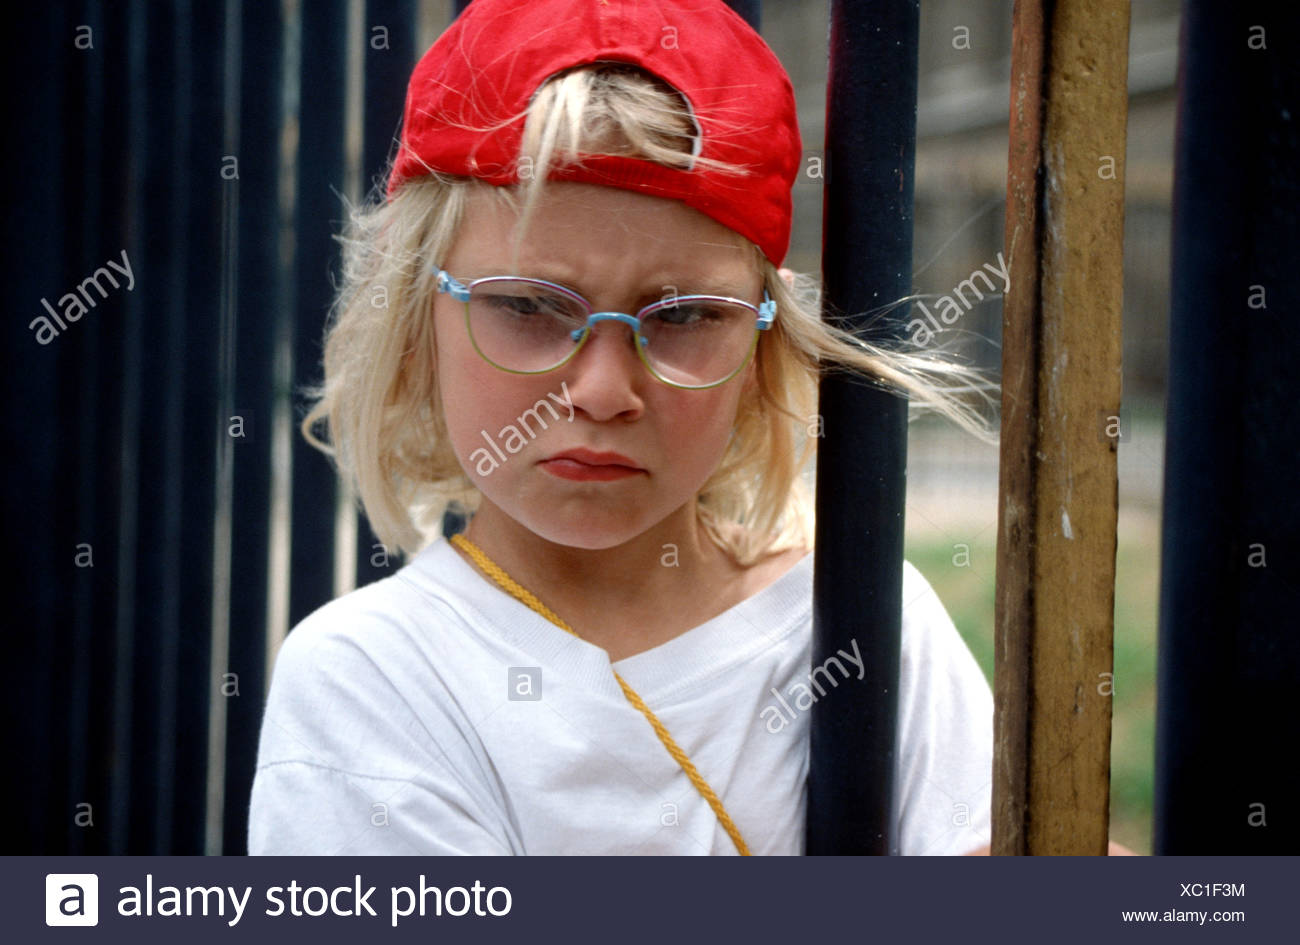 Toddler tantrum: Frustrated little girl with eye glasses pouting. - Stock Image